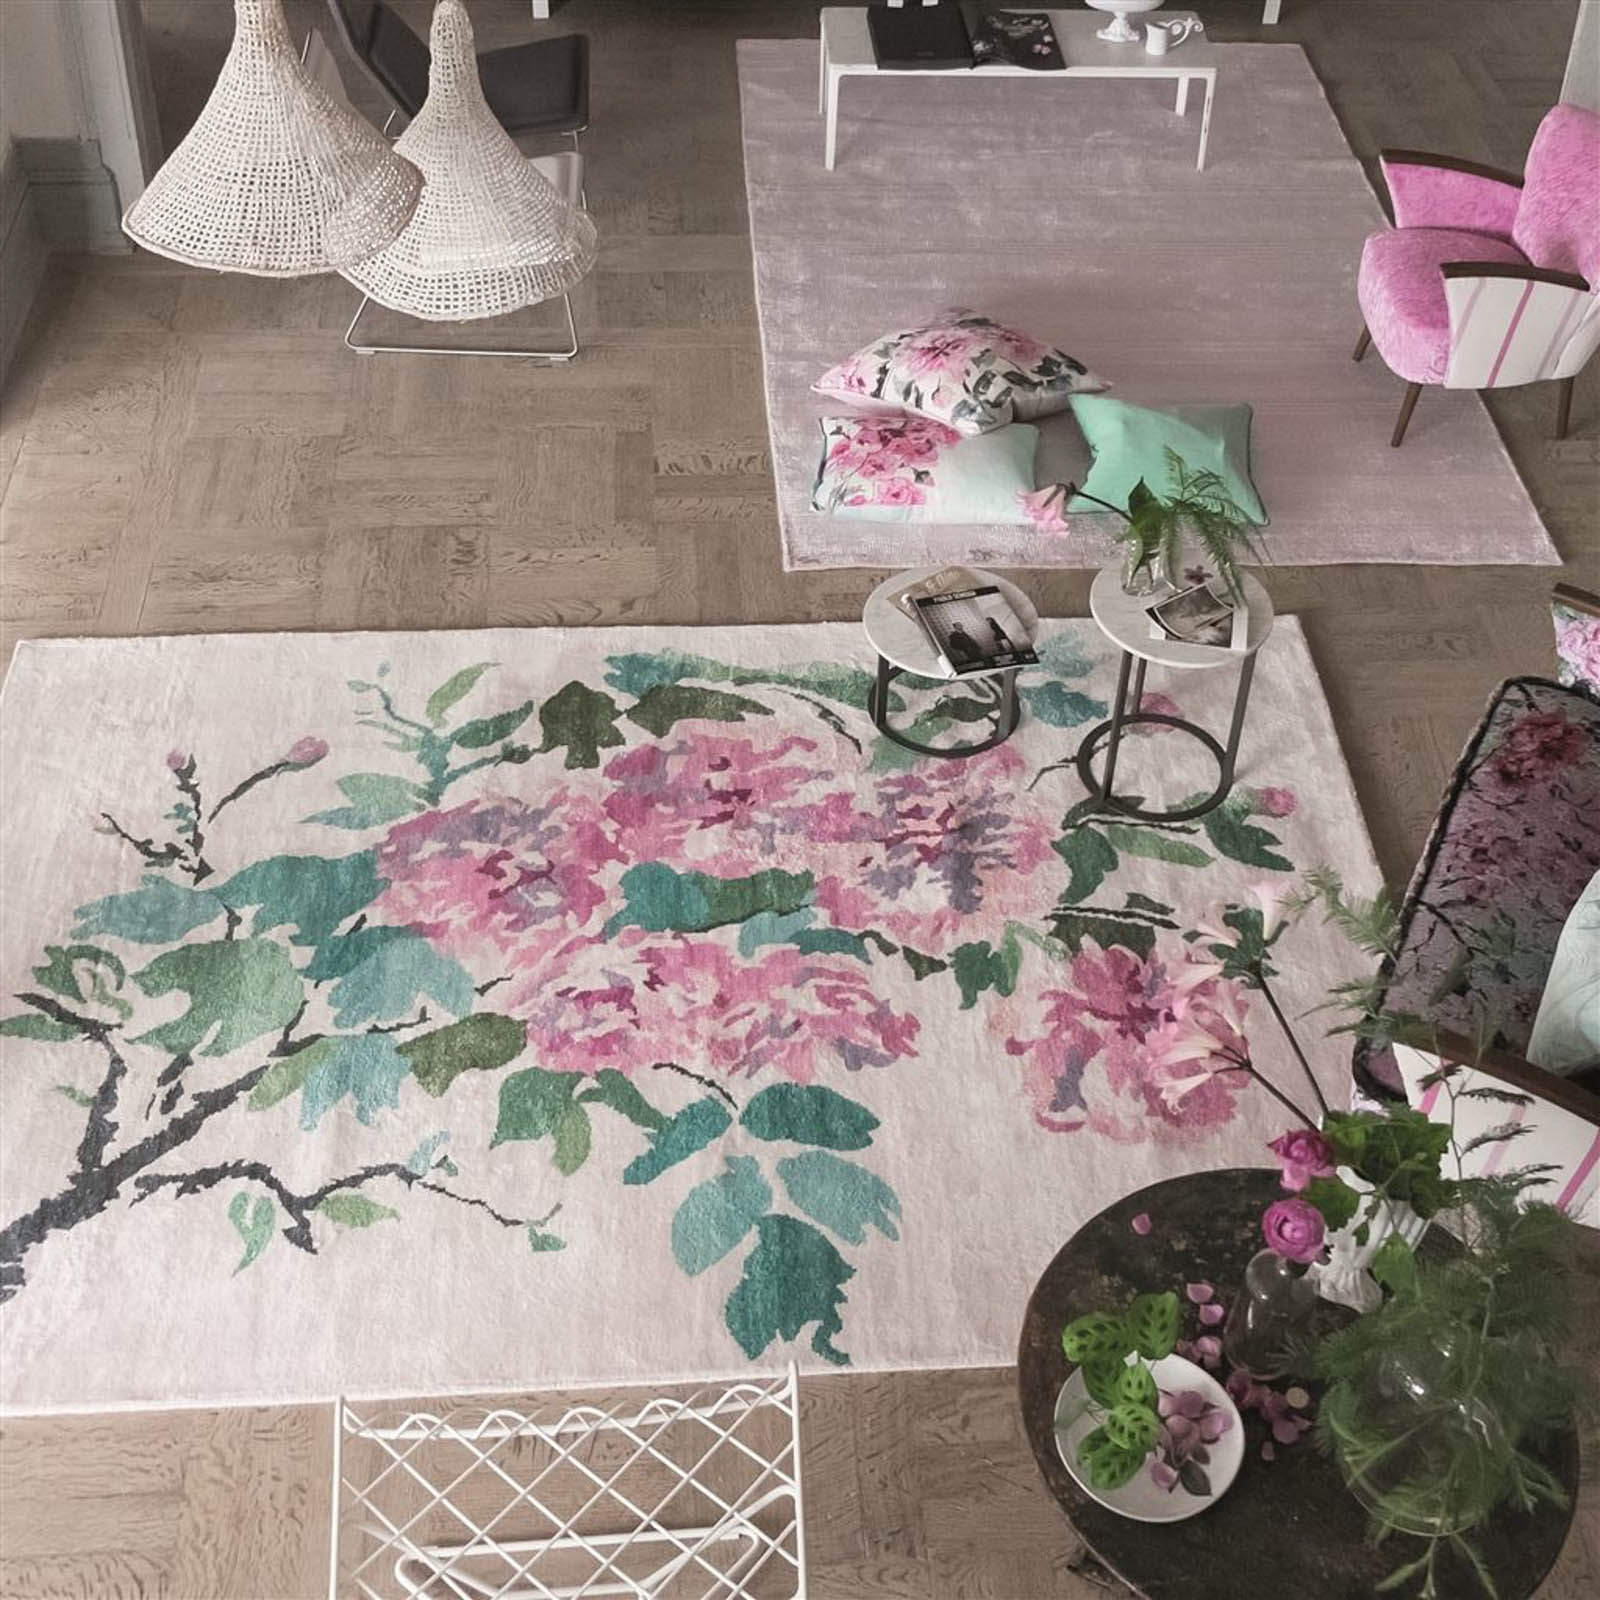 Shanghai Garden Peony Rug by Designers Guild